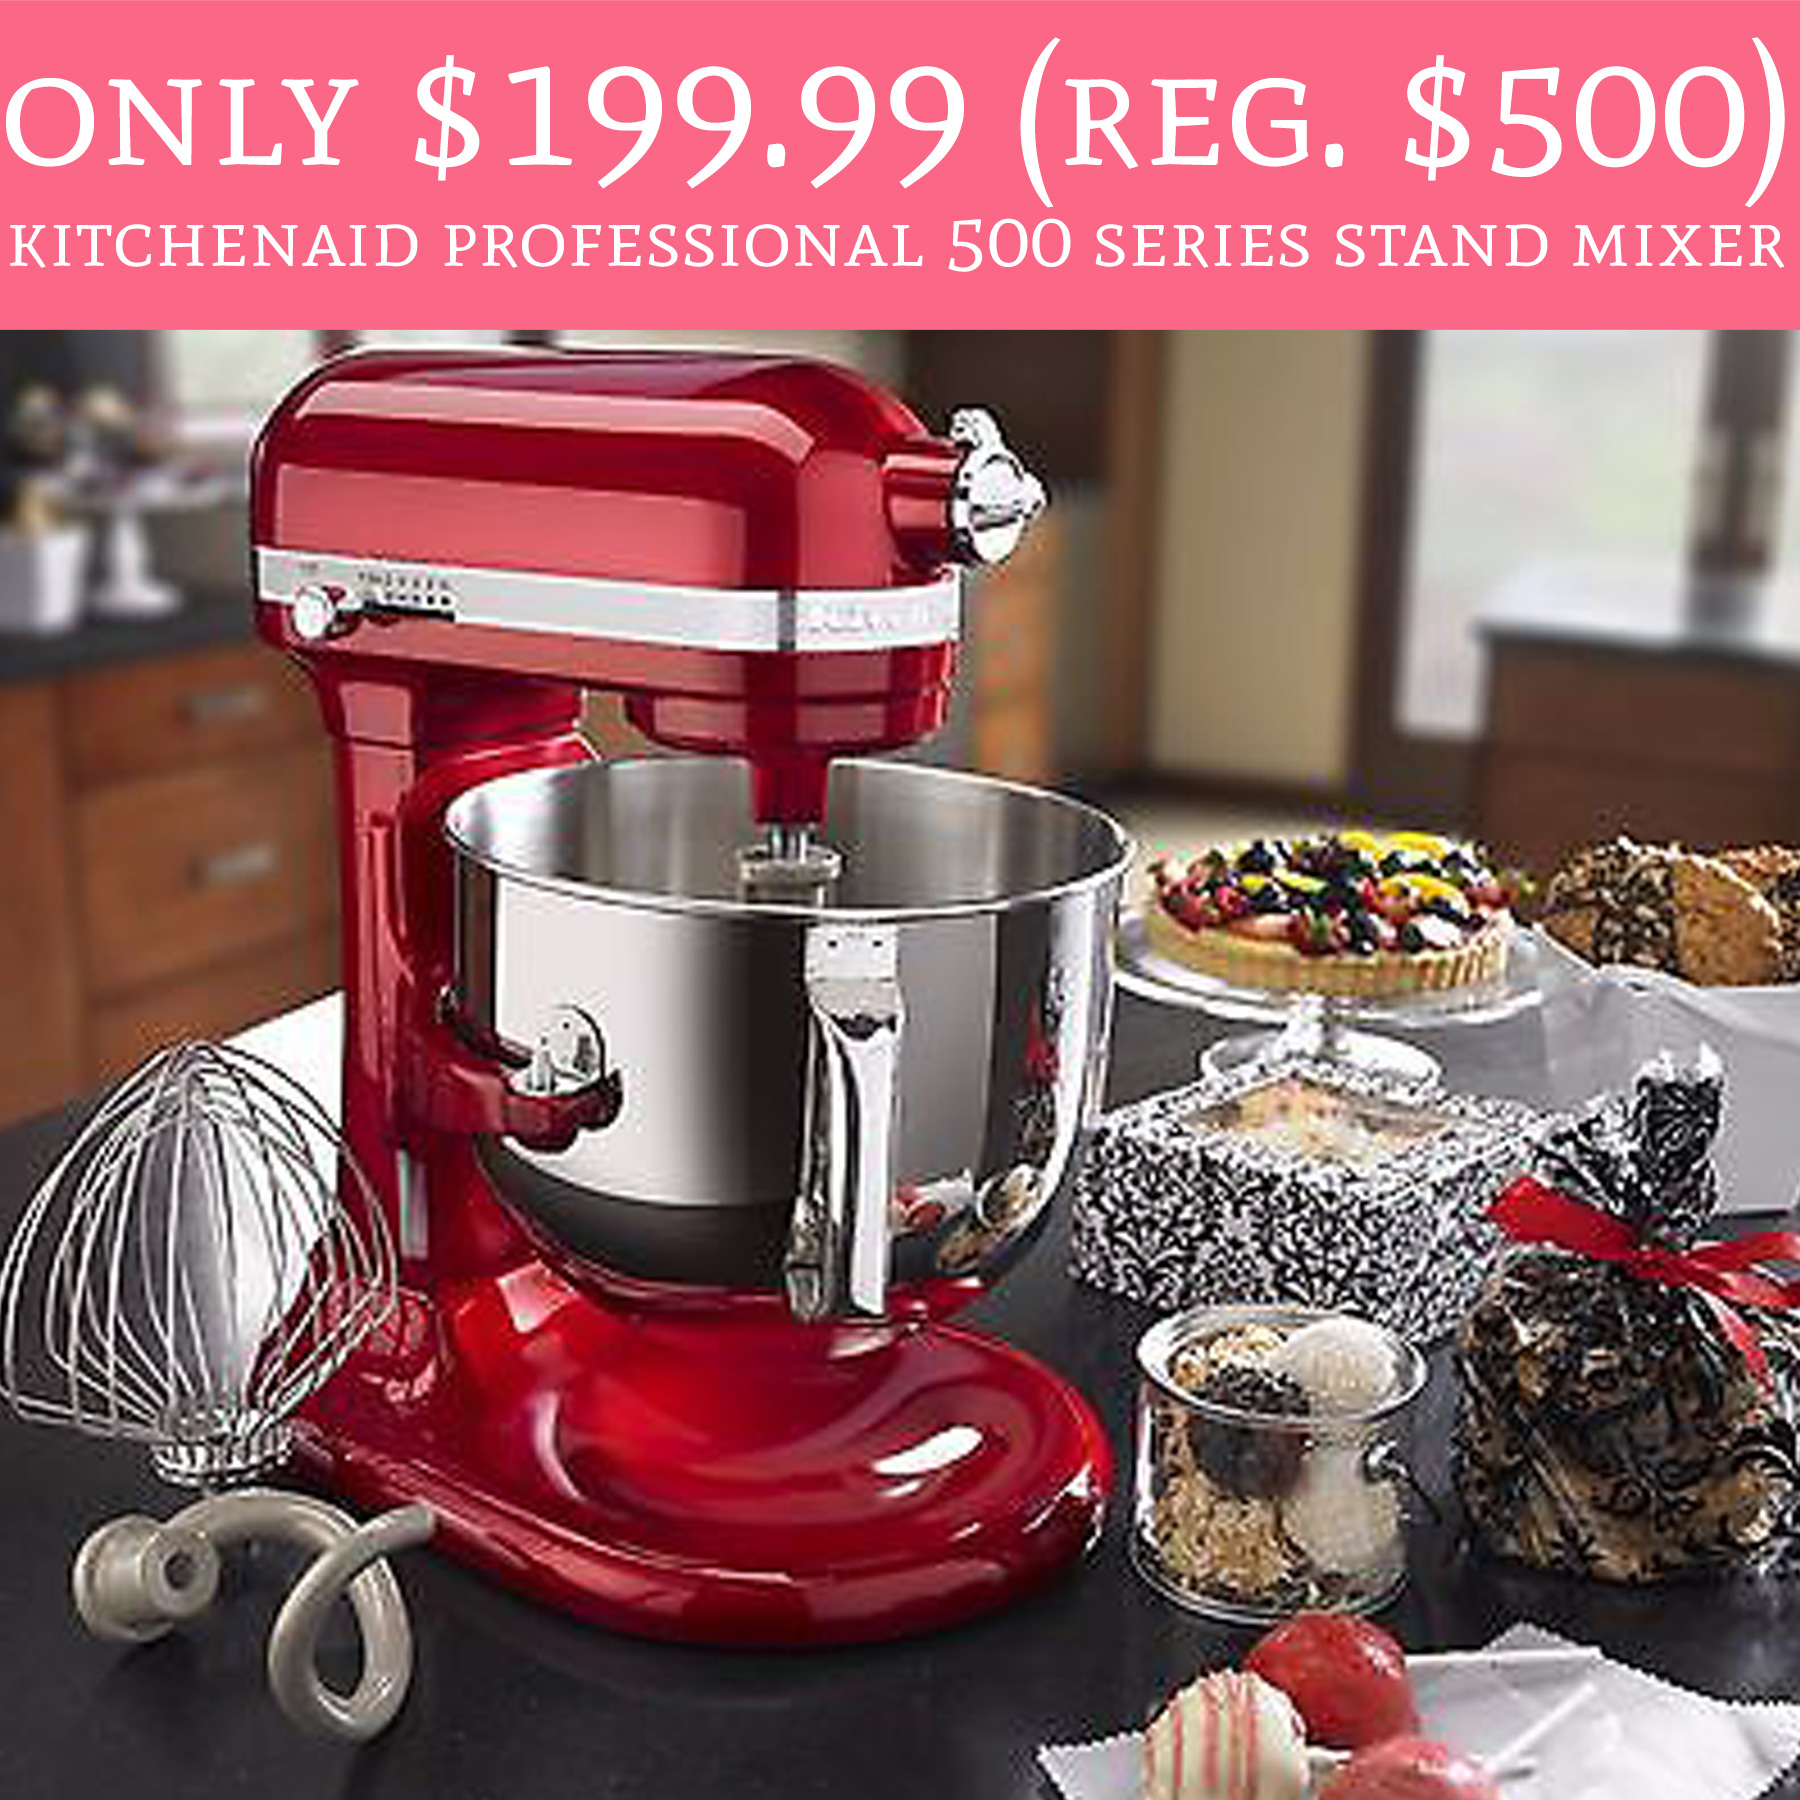 Only 199 99 Regular 500 Kitchenaid Professional 500 Series Stand